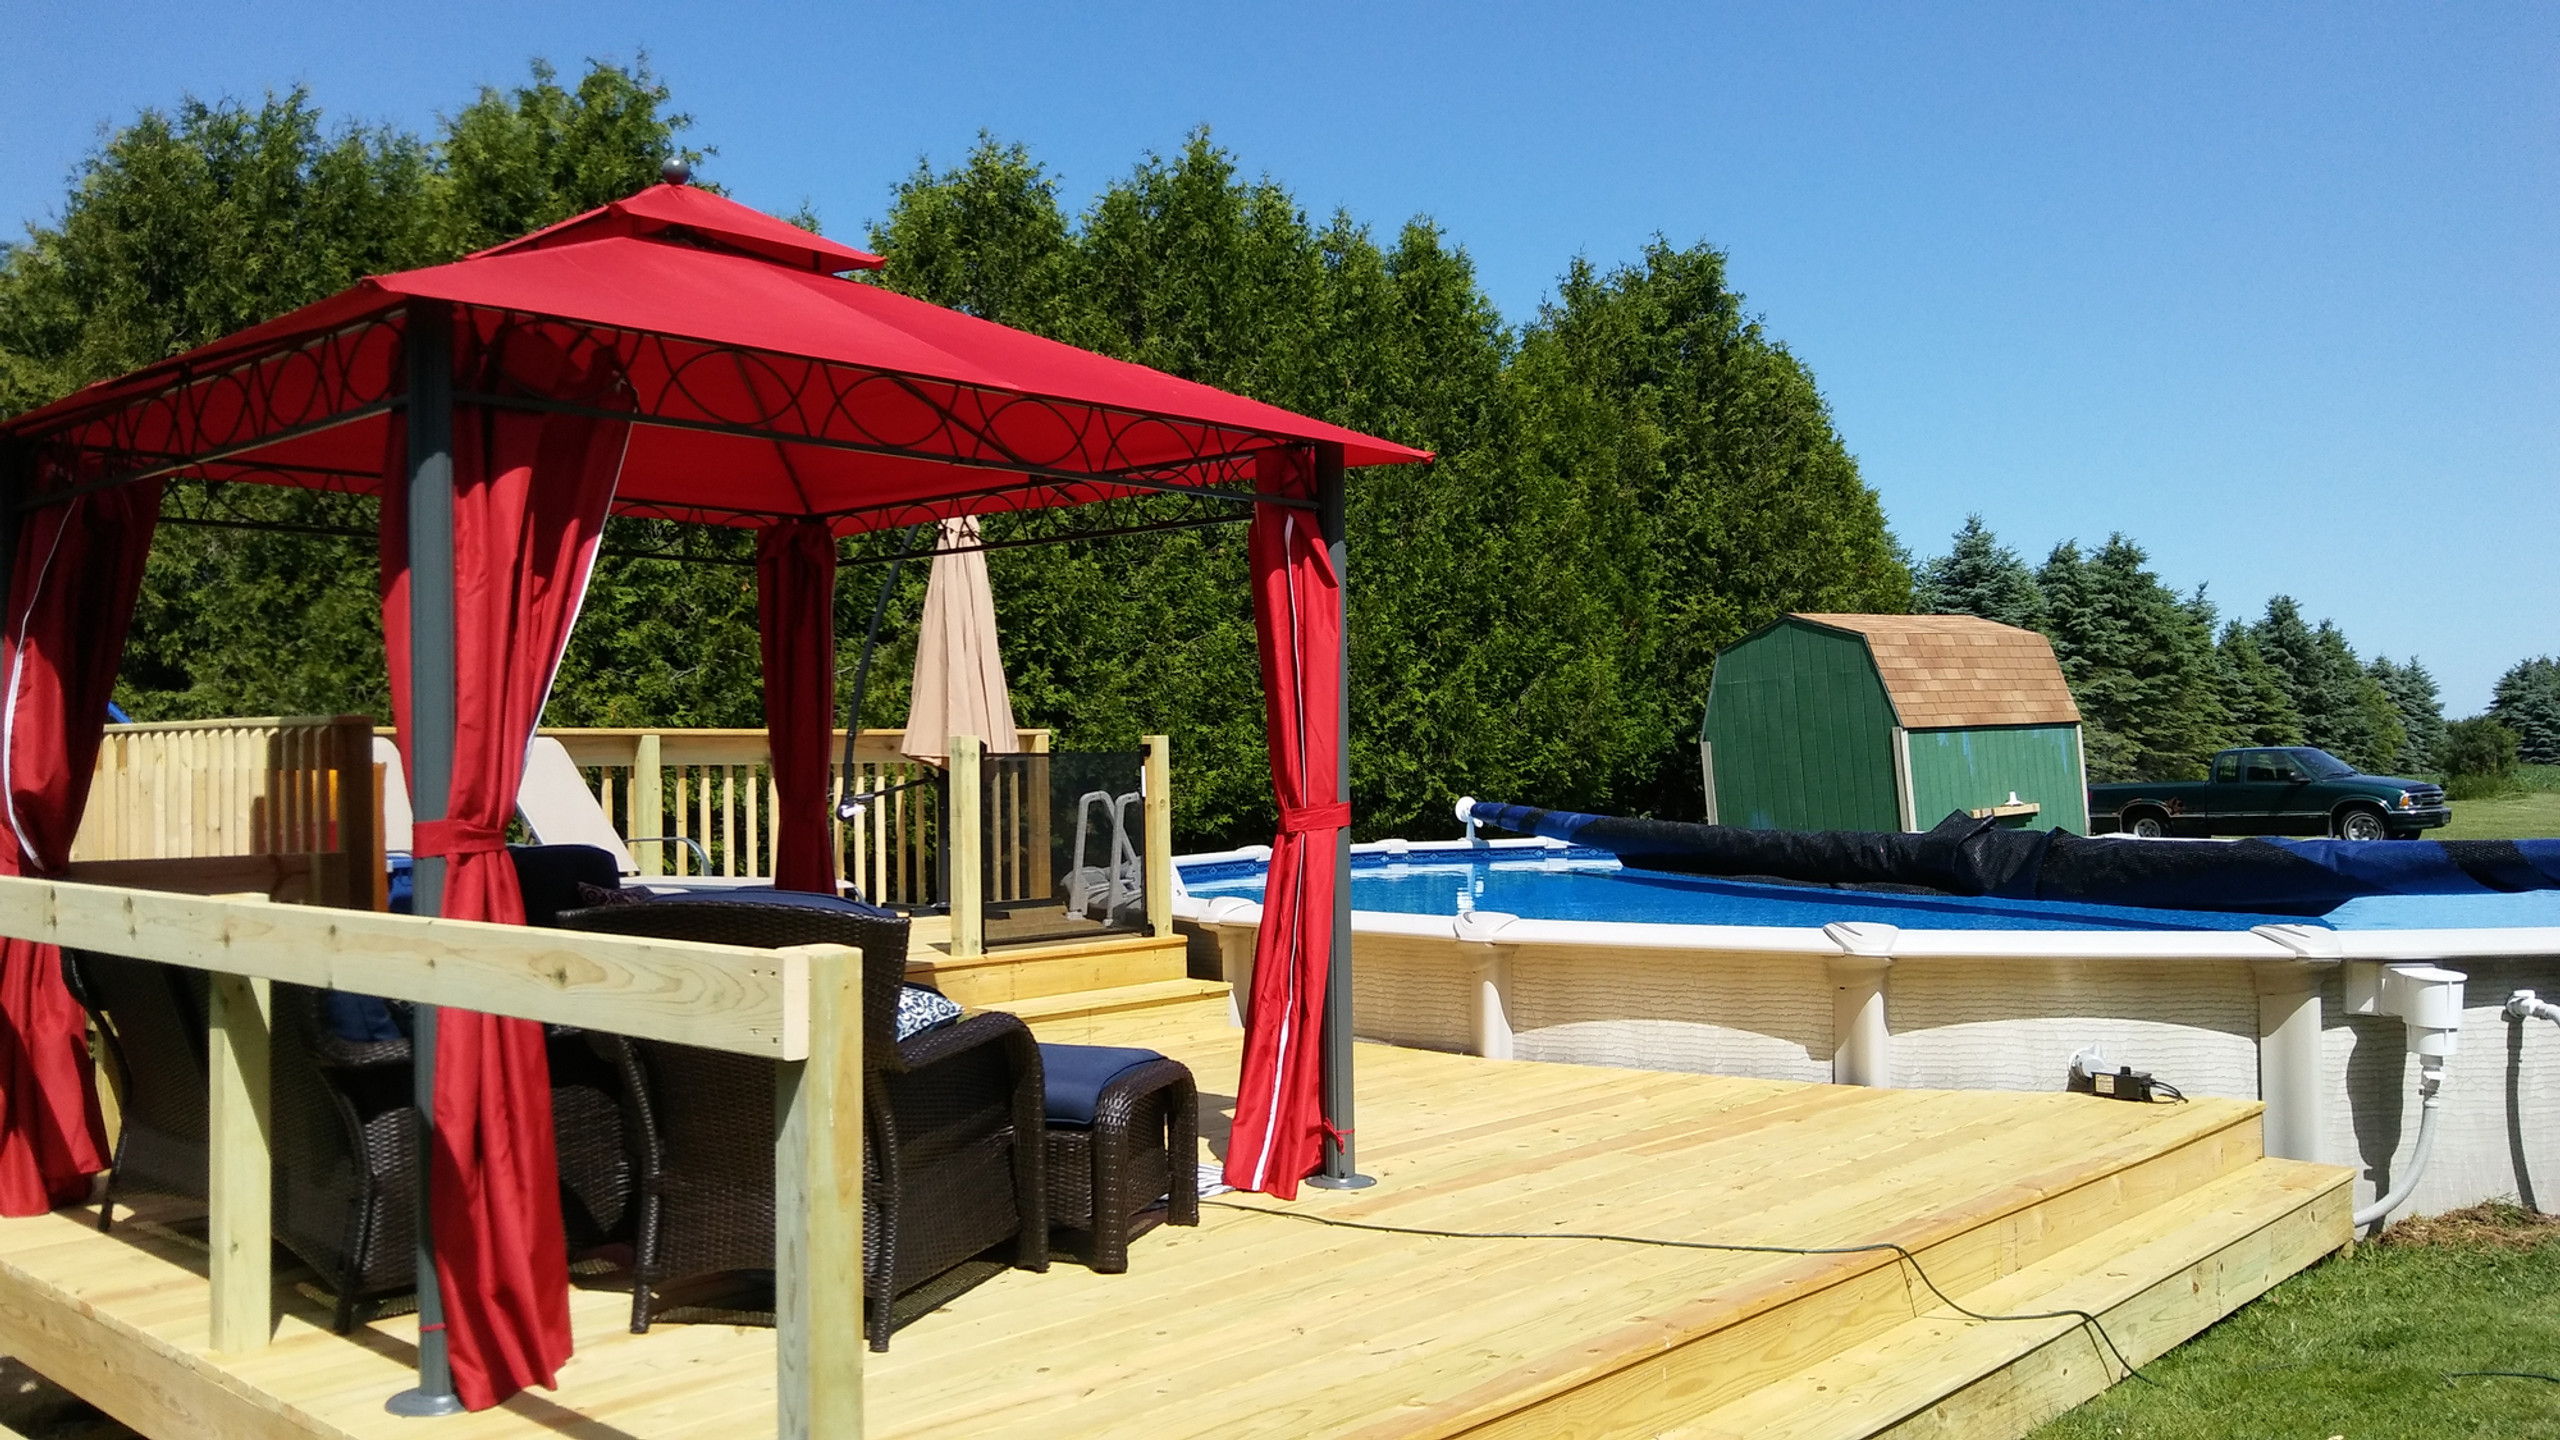 Another 30' Round Evolution Above Ground Pool by Pool Pros in Sturgeon Bay WI.